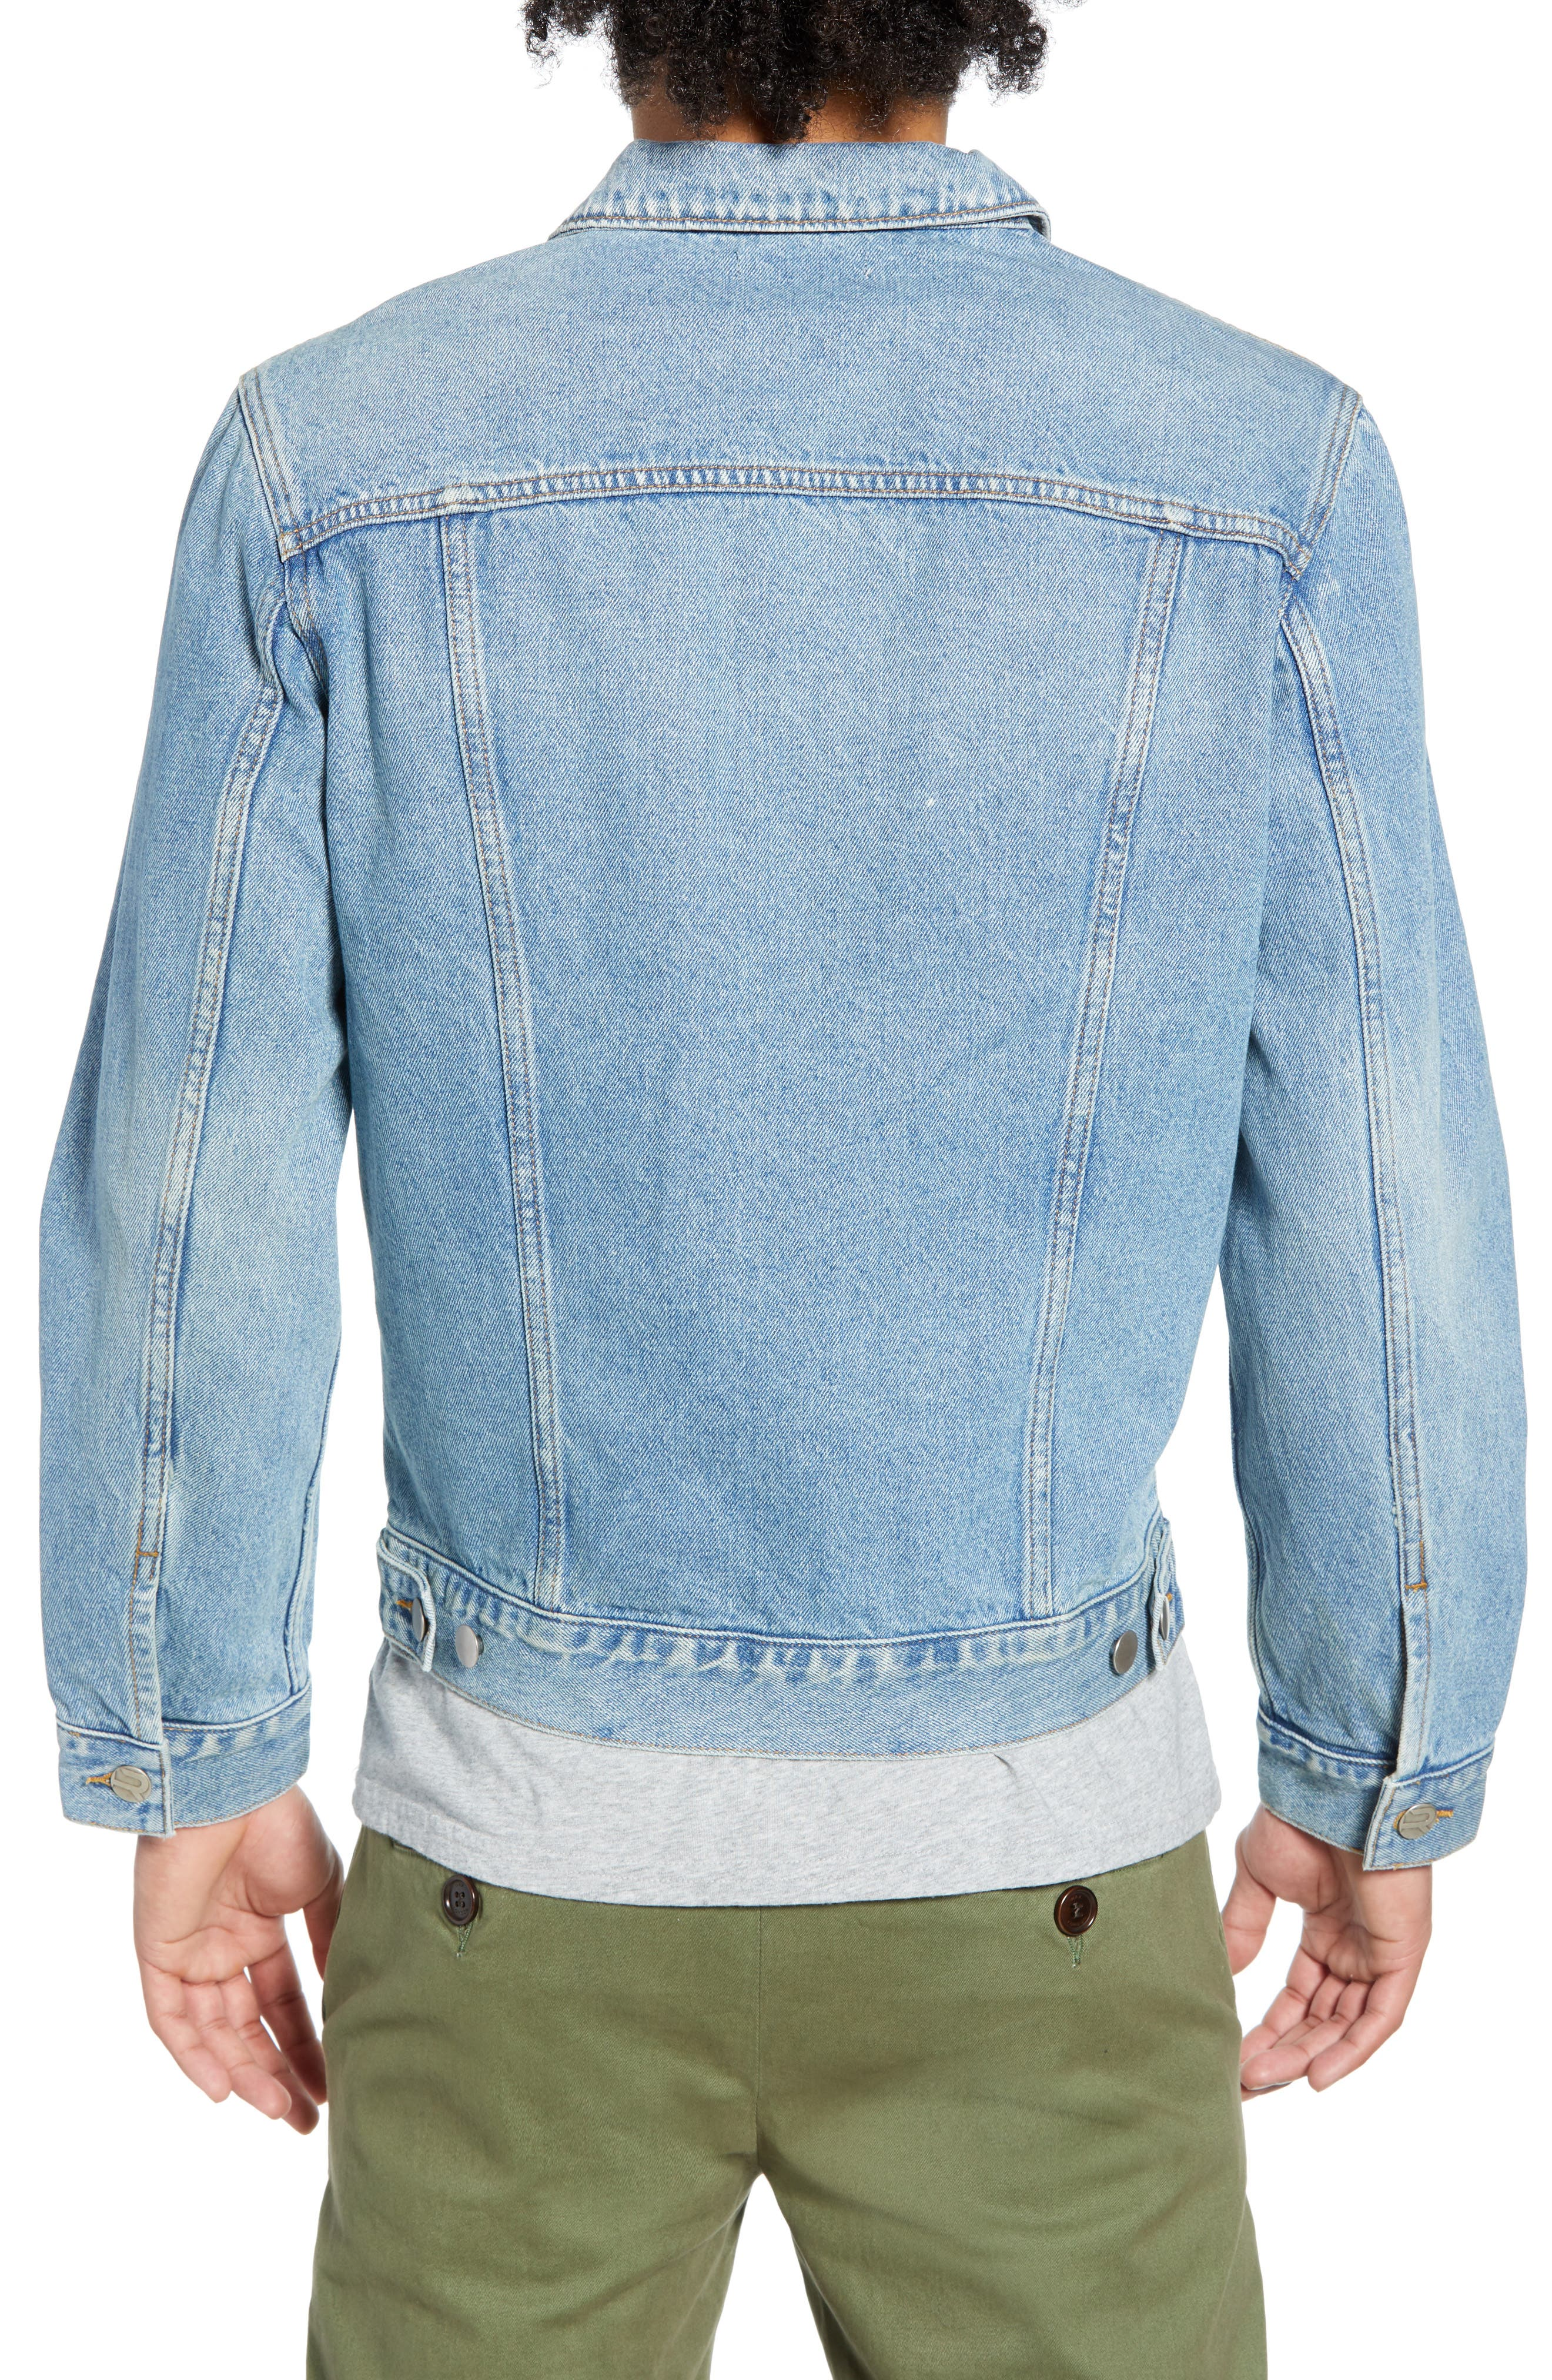 THE RAIL, Denim Jacket, Alternate thumbnail 2, color, BLUE TREK WASH